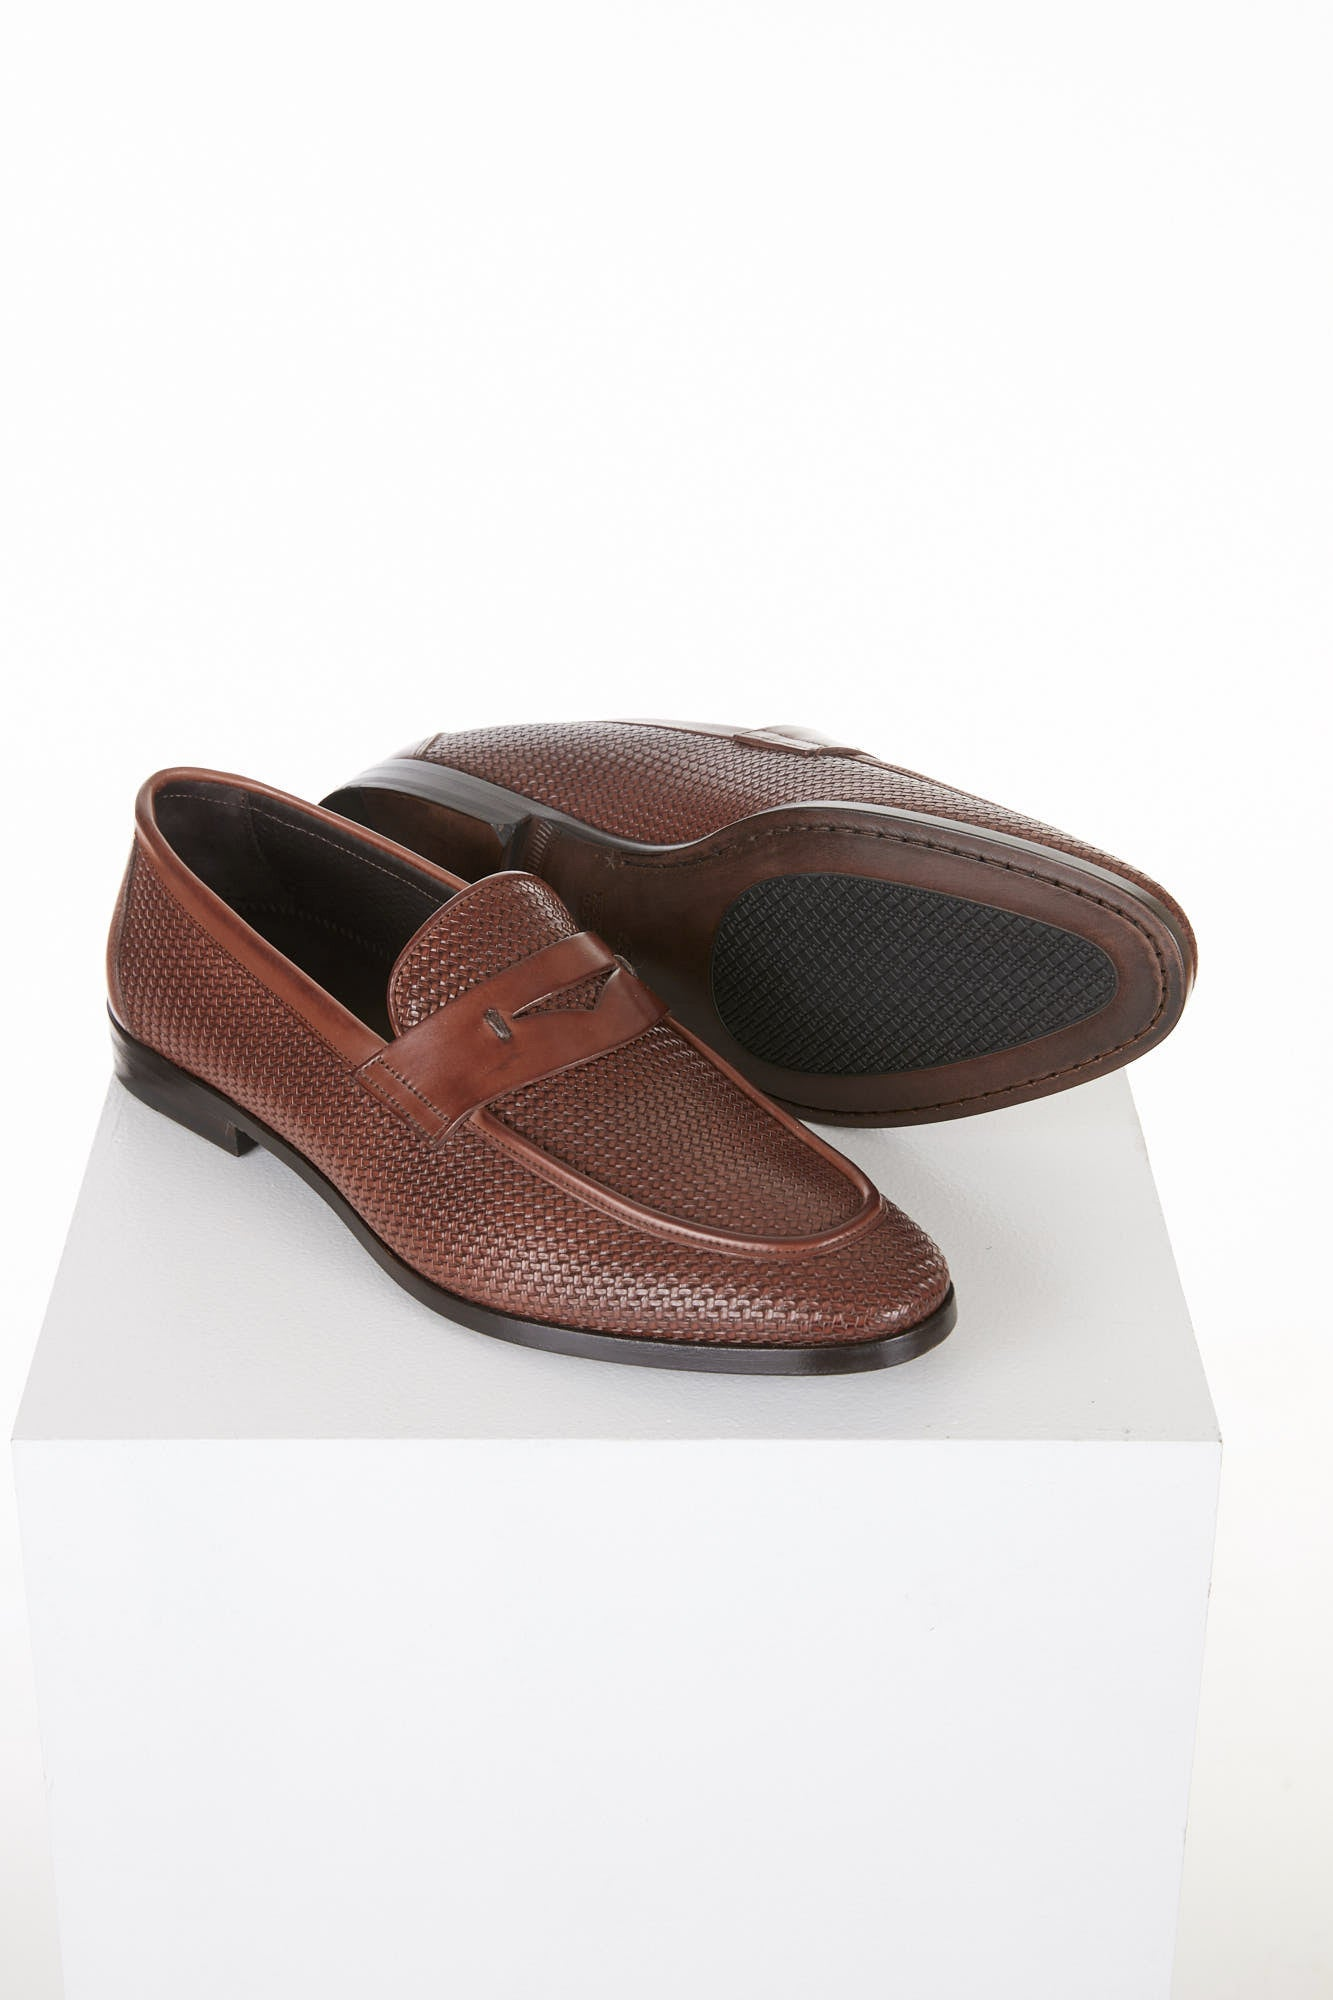 Canali Brown Printed Leather Penny Loafers